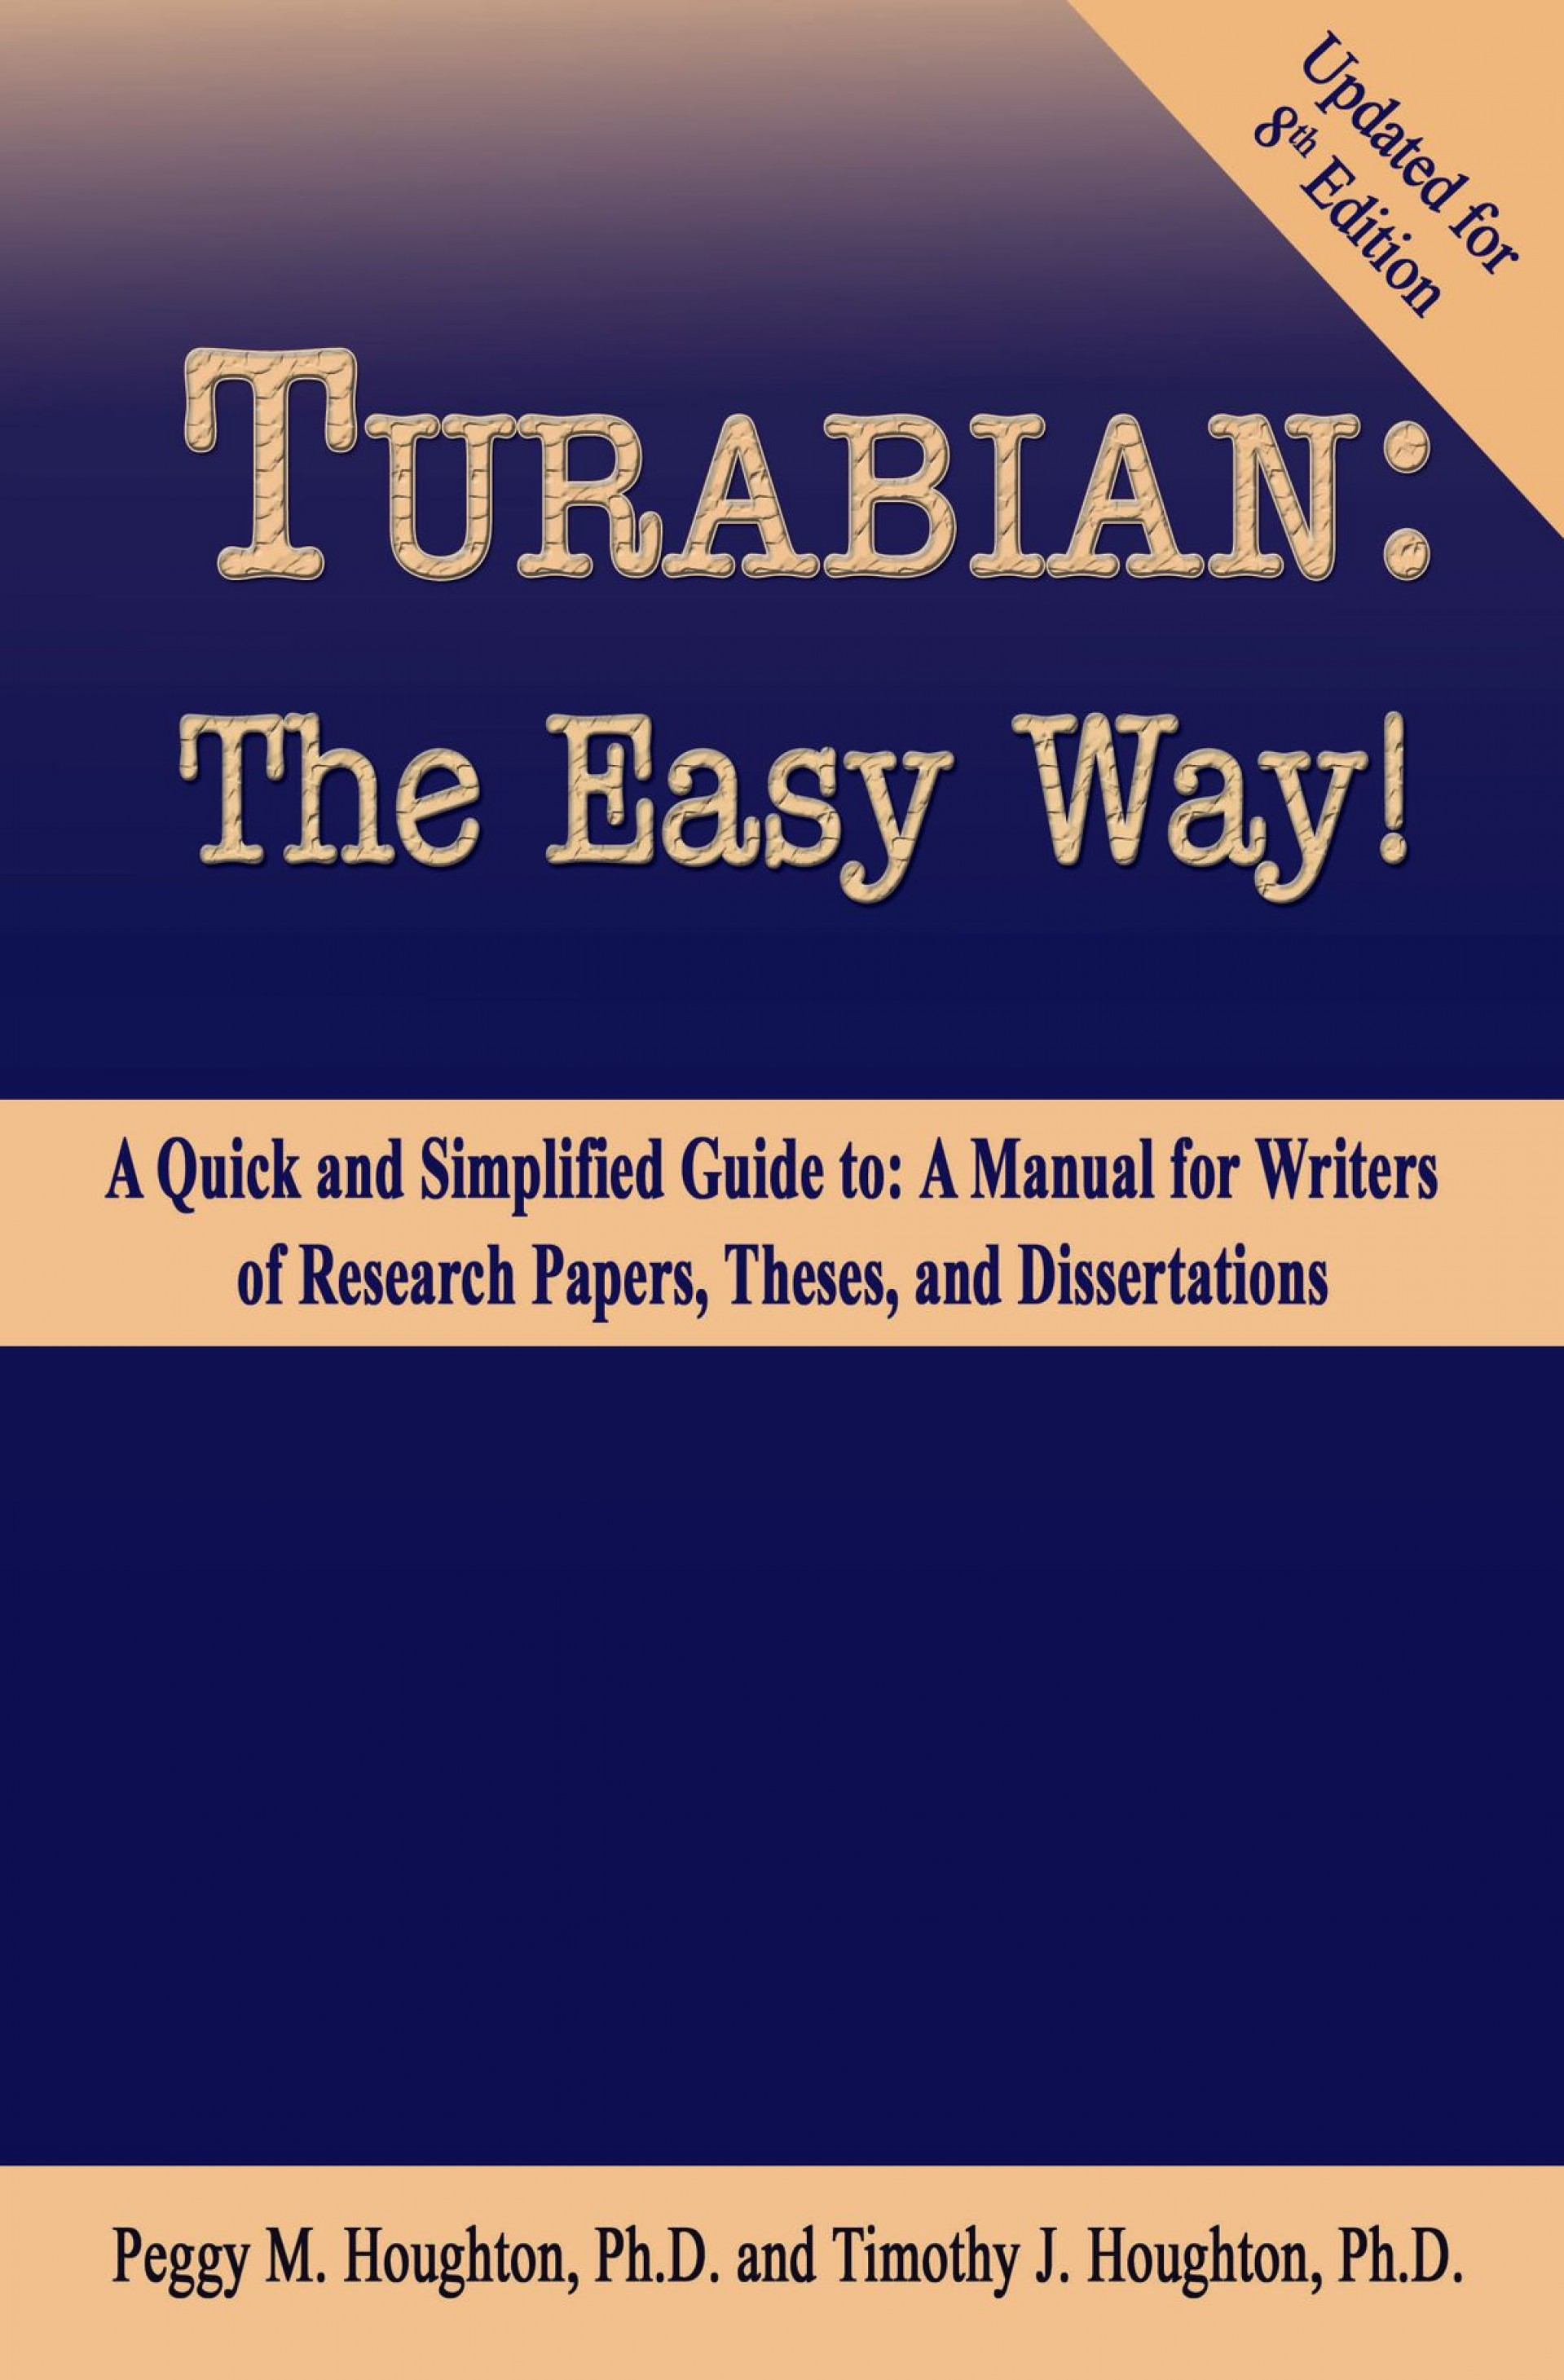 018 Research Paper Turabian The Easy Way For 8th Edition Manual Writers Of Papers Theses And Amazing A Dissertations Pdf 1920